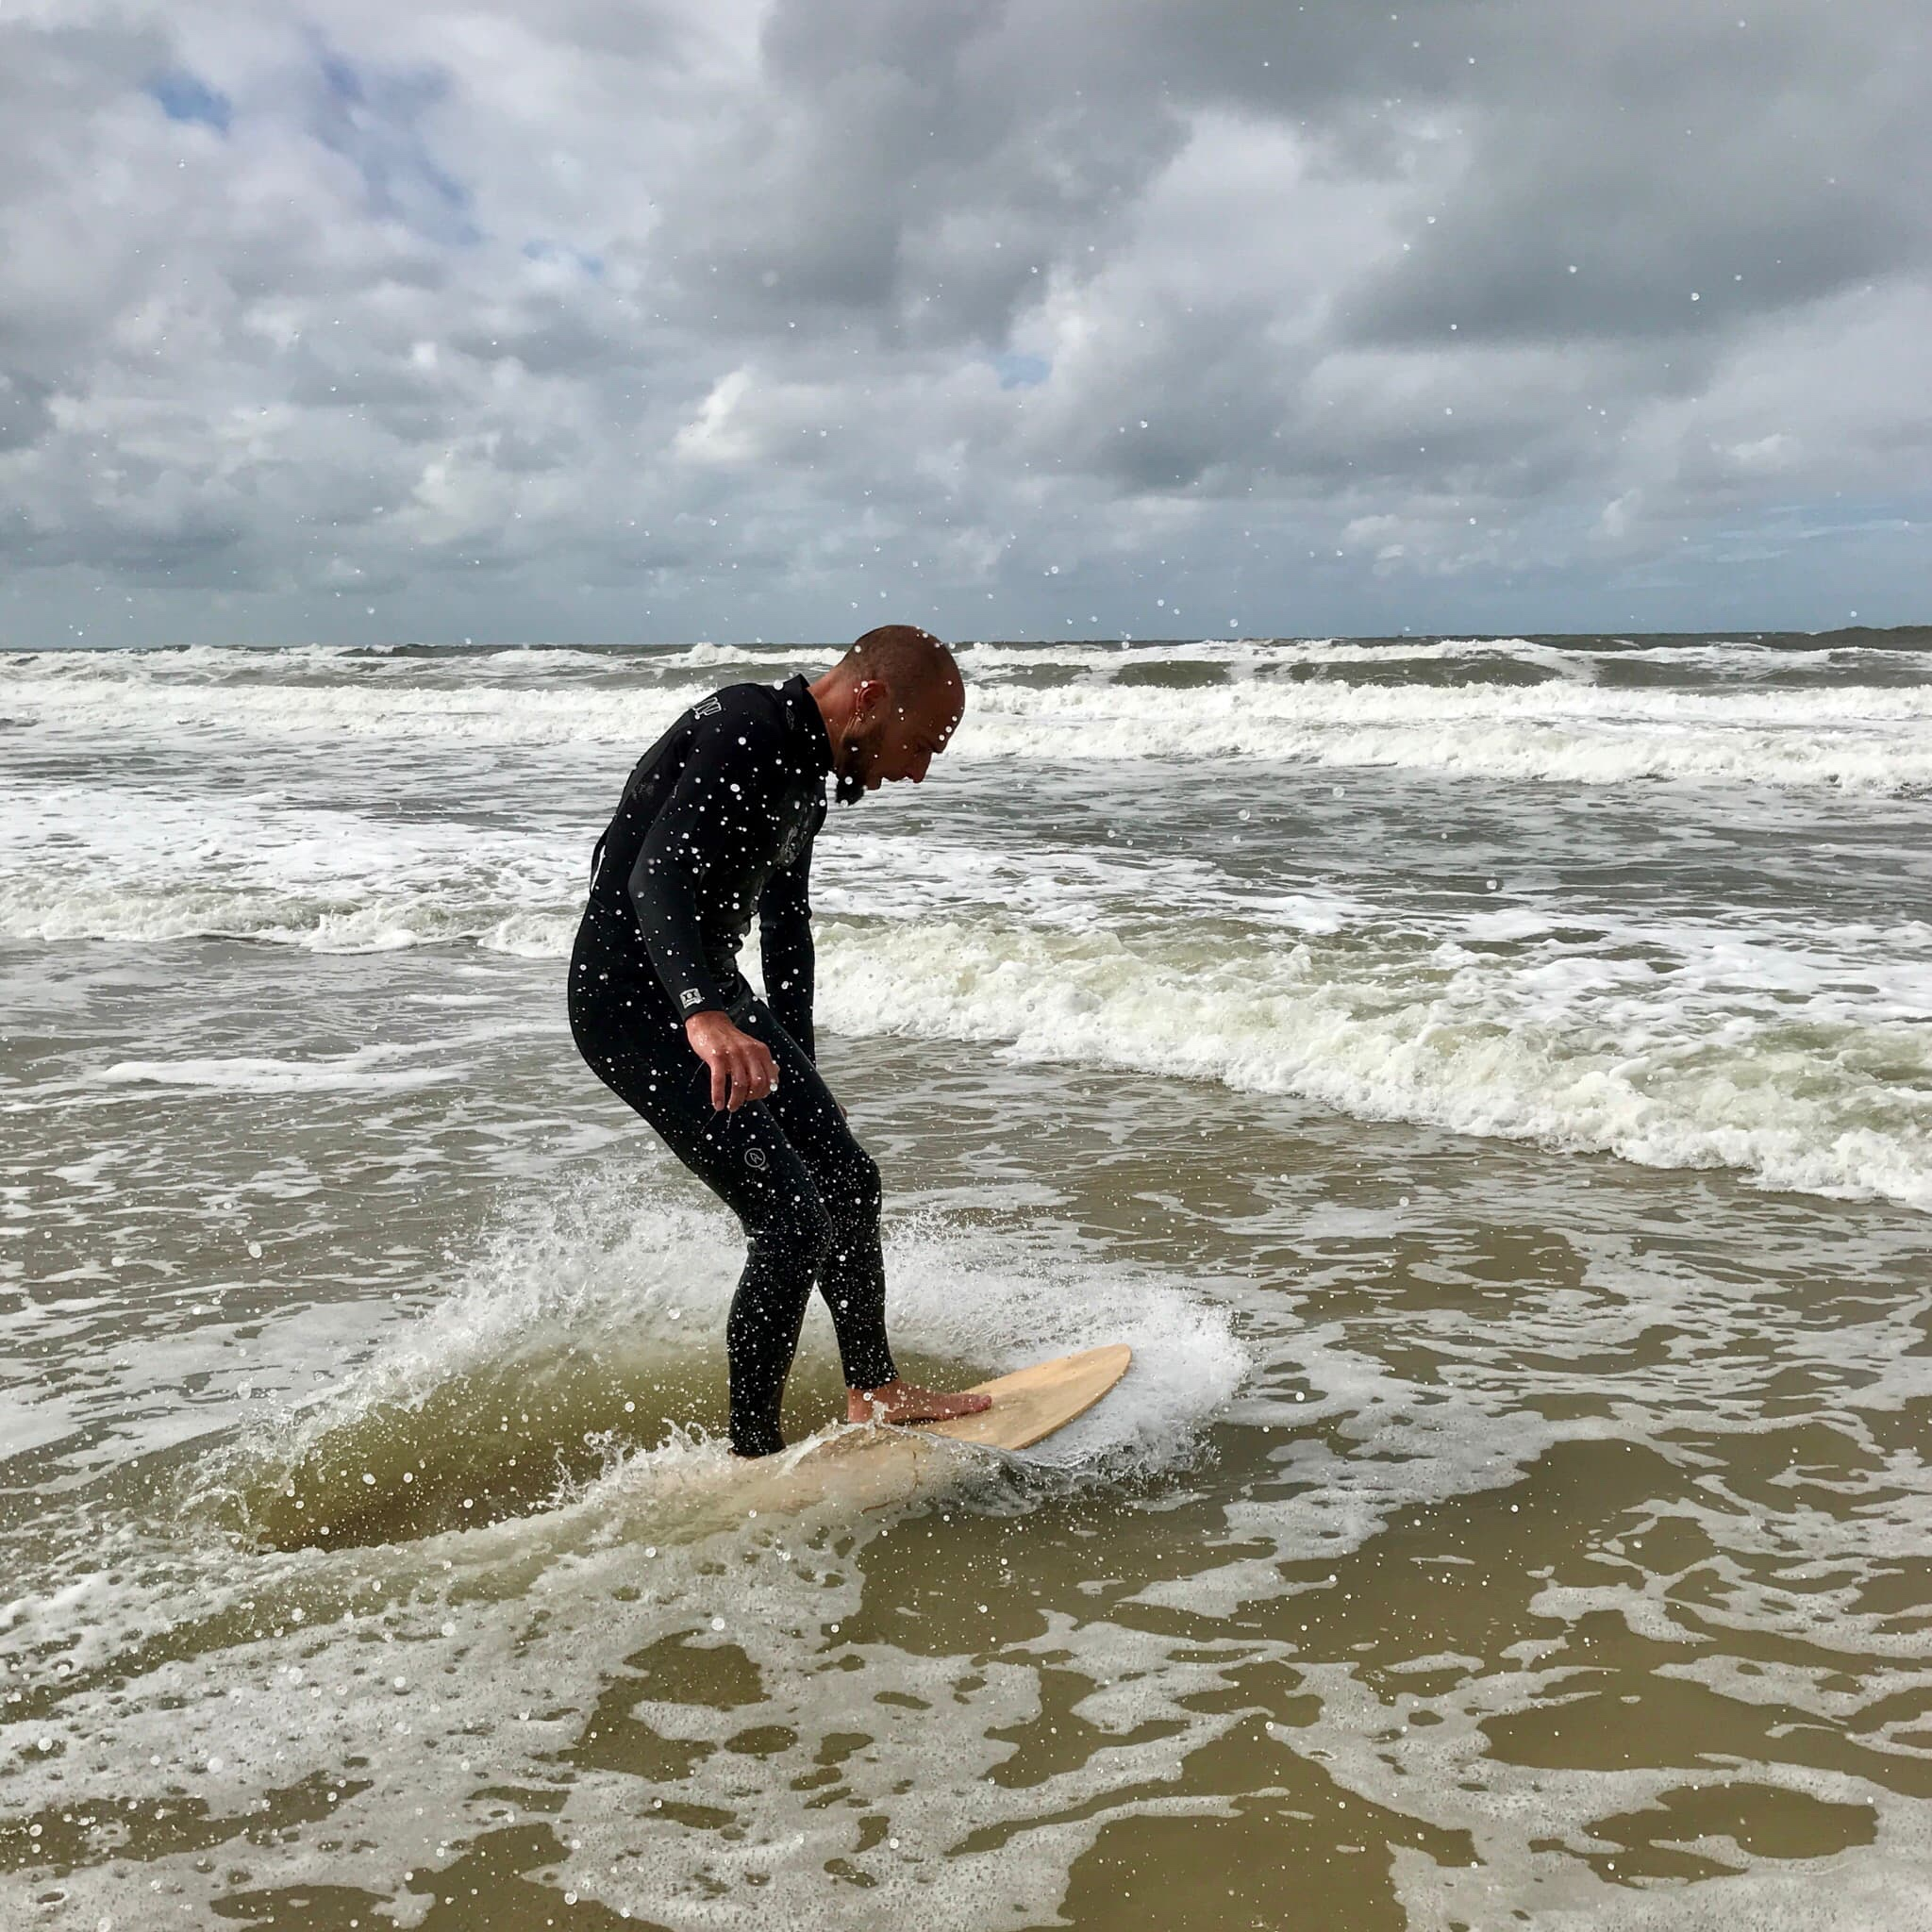 Me trying to catch a wave on a skimboard